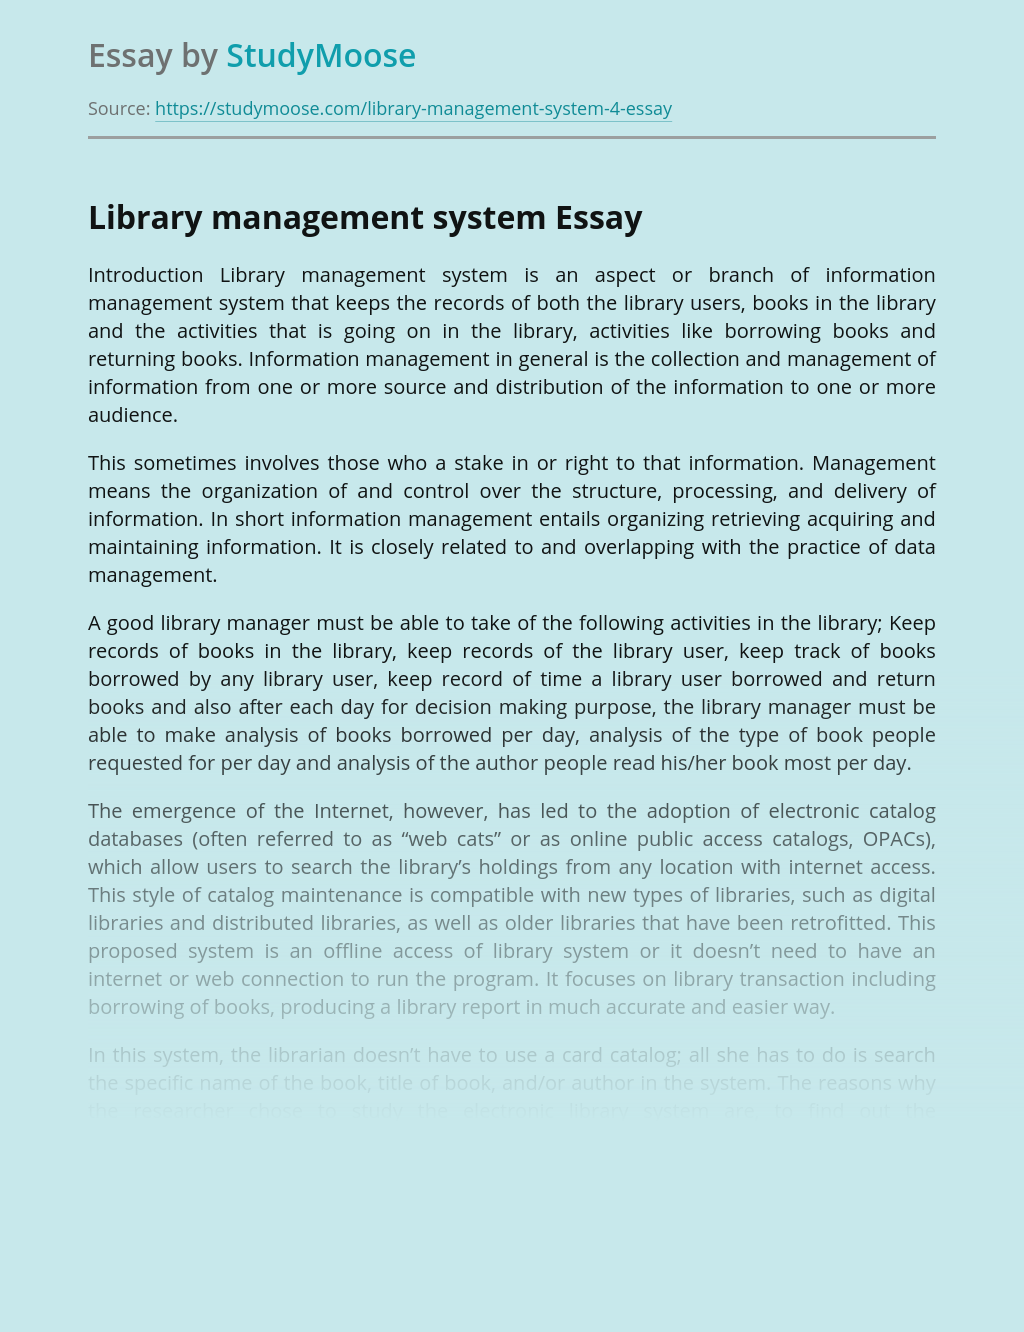 An Integrated Library System